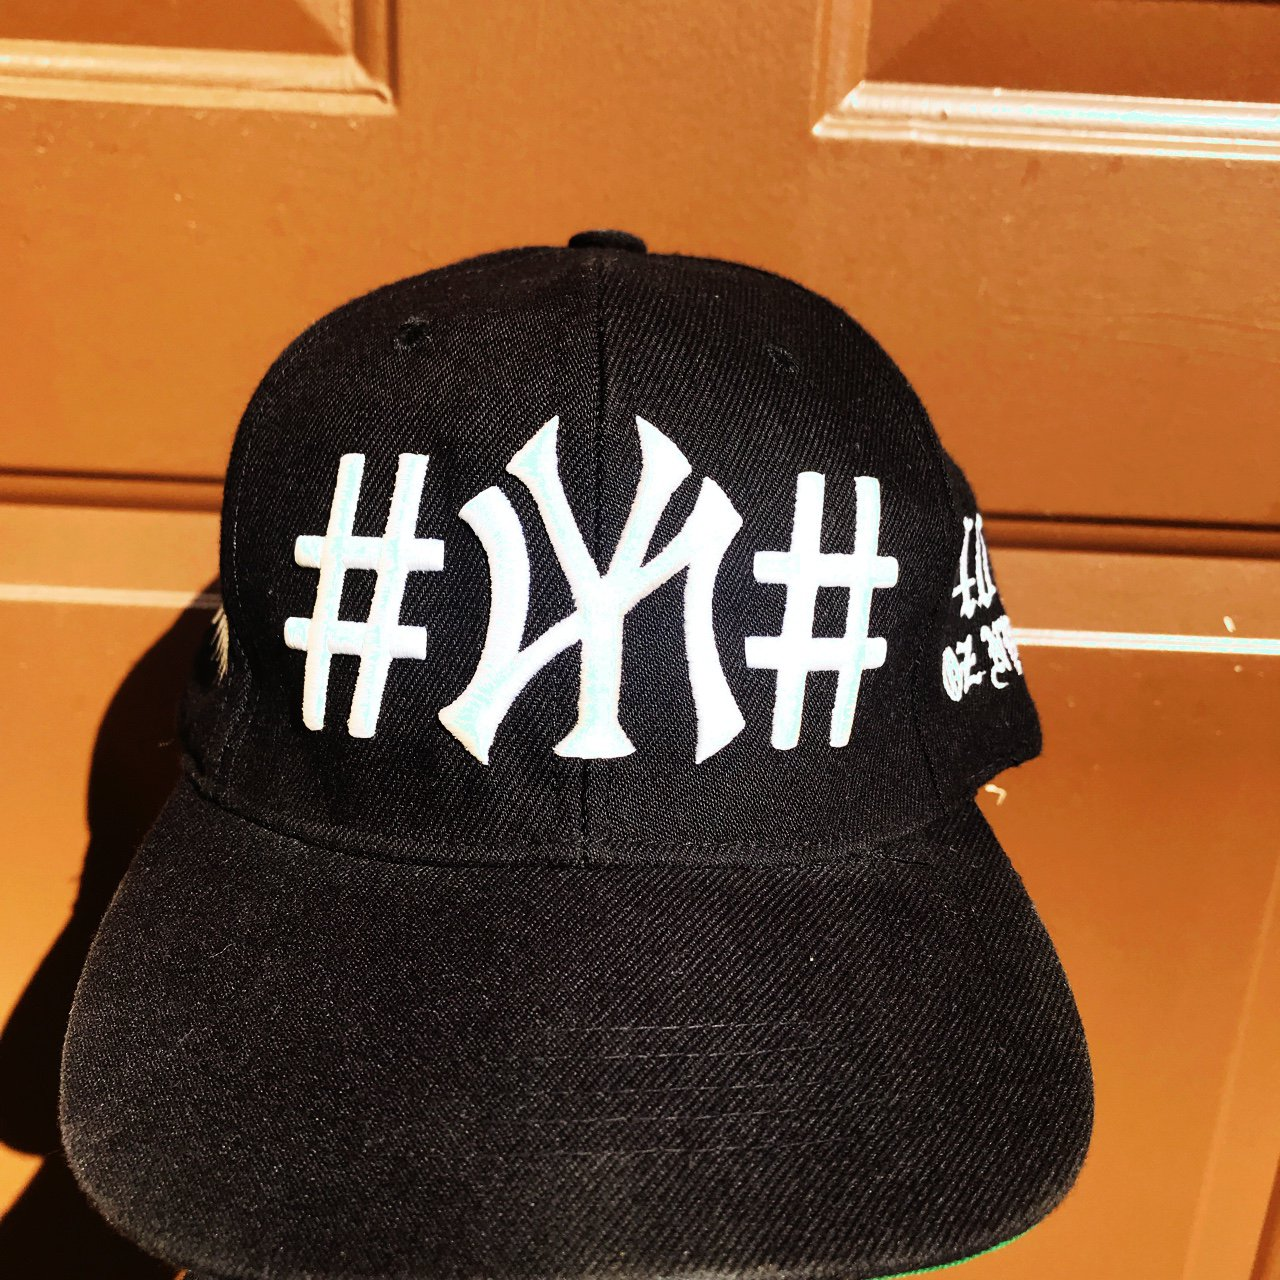 c993f3af1e3 Been Trill x 40oz NYC collaboration snapback ball cap. Circa - Depop